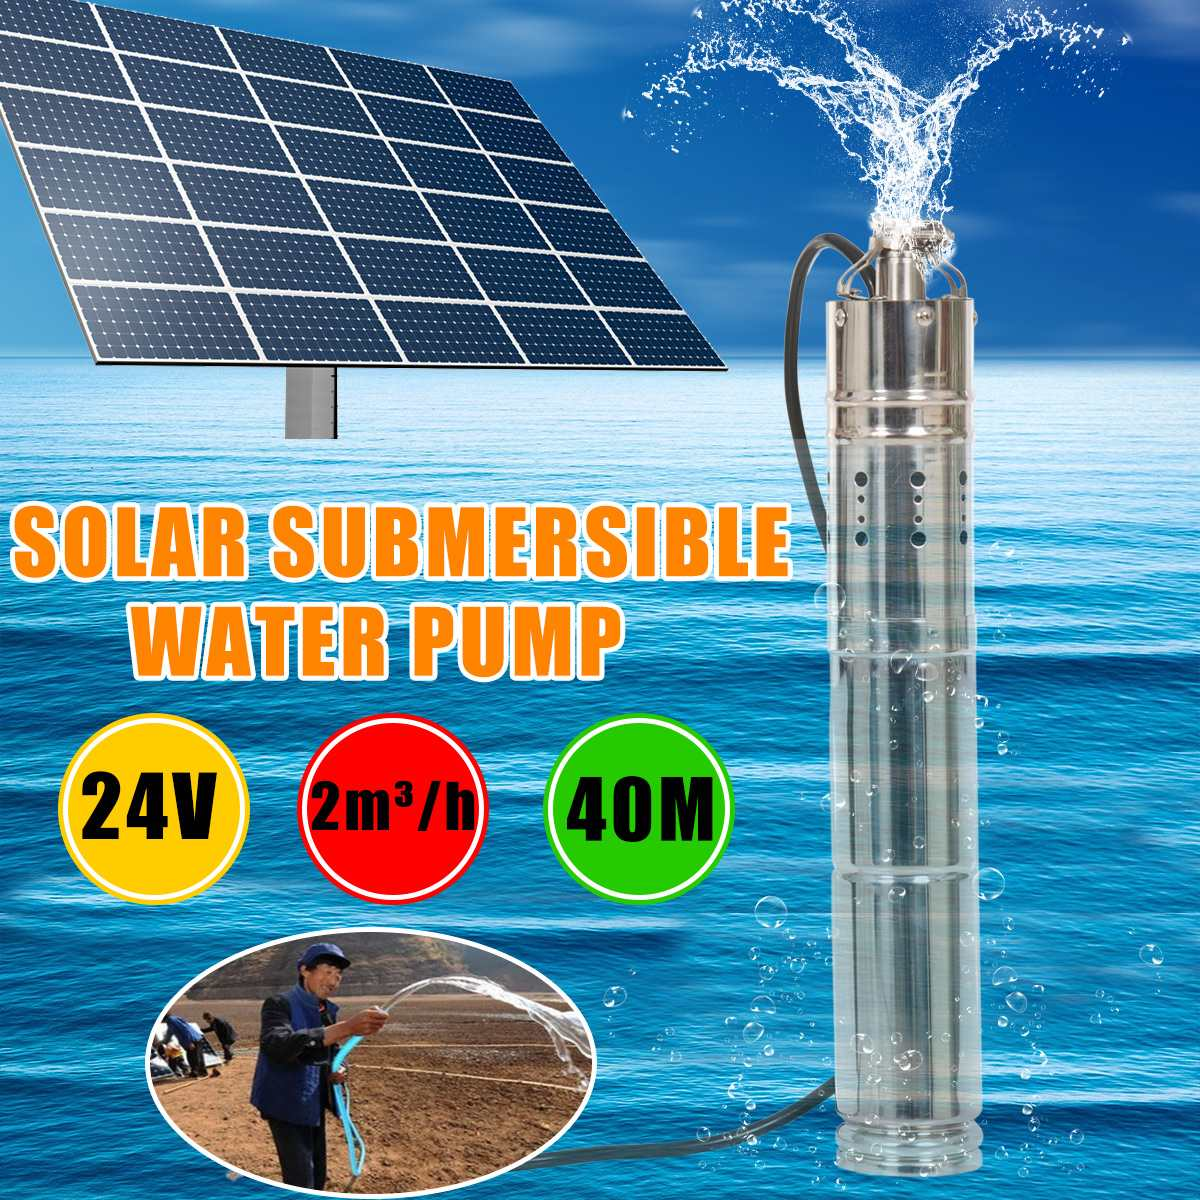 24V DC 2m3/h 284W Brushless Solar Powered Water Pump Submersible Deep Well Water Pump for Livestock Farm Fountains Water Supply